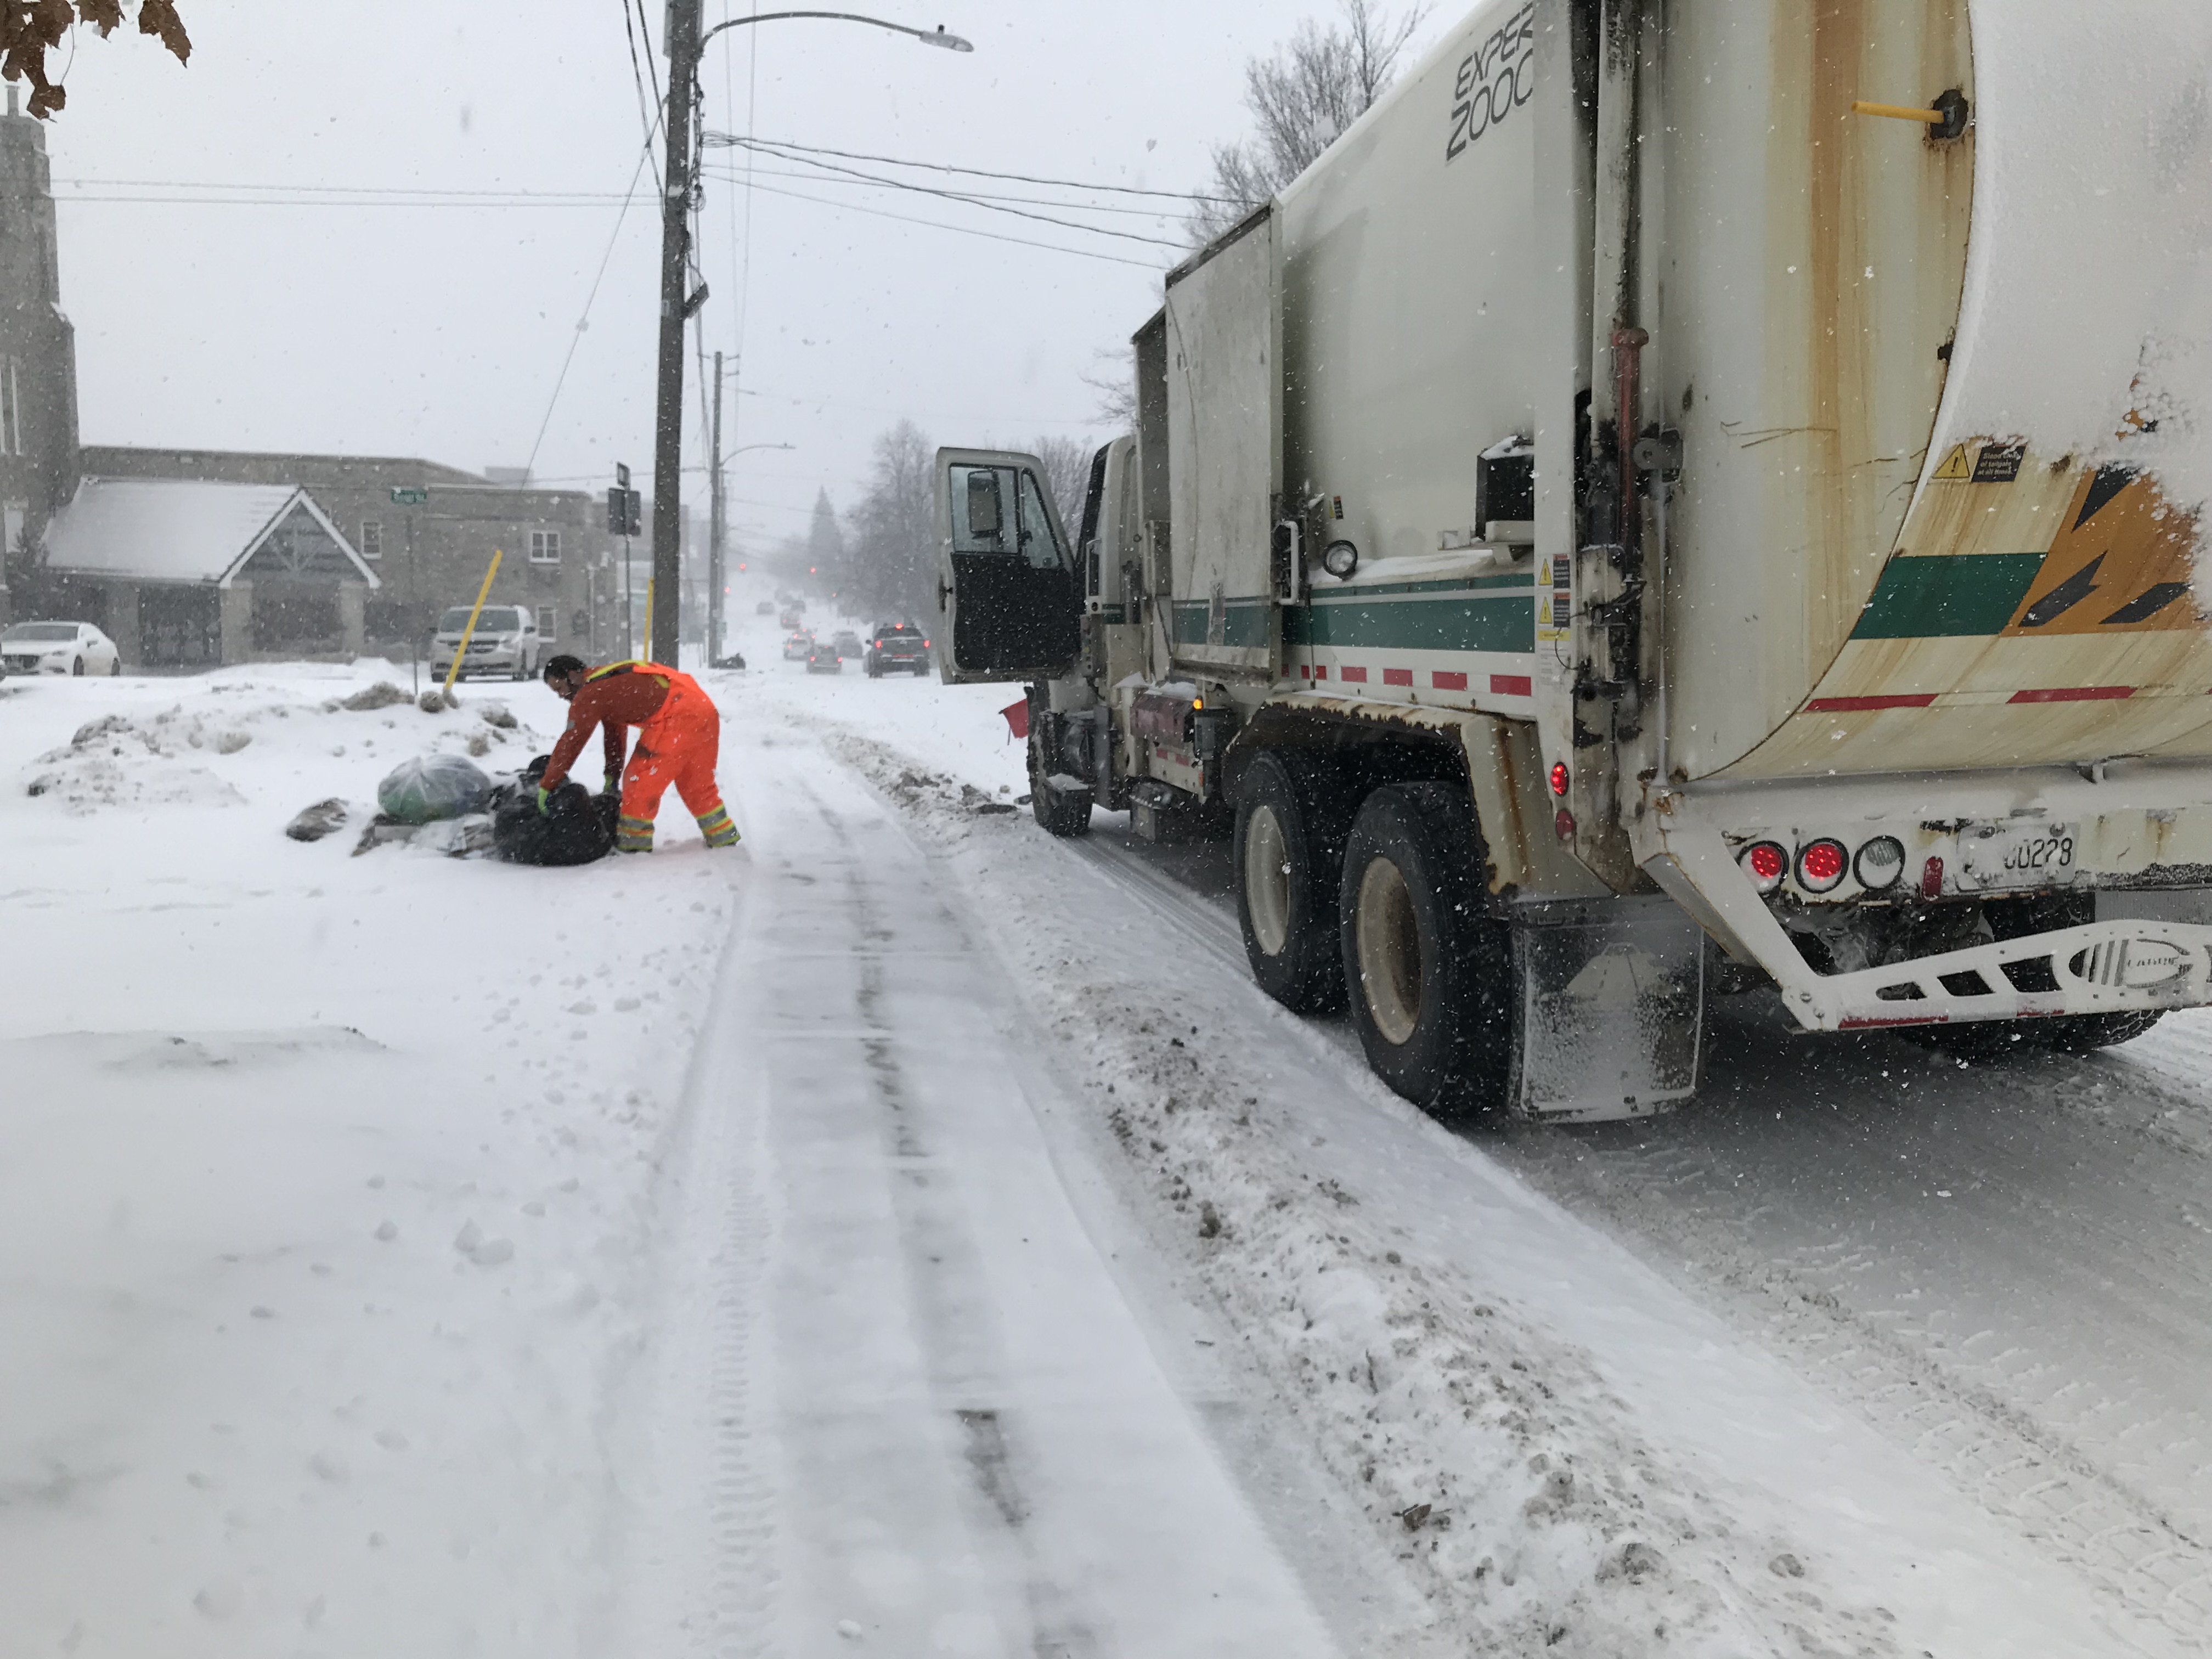 snowy street, waste collection vehicle stopped on side of street as worker picks up recycling